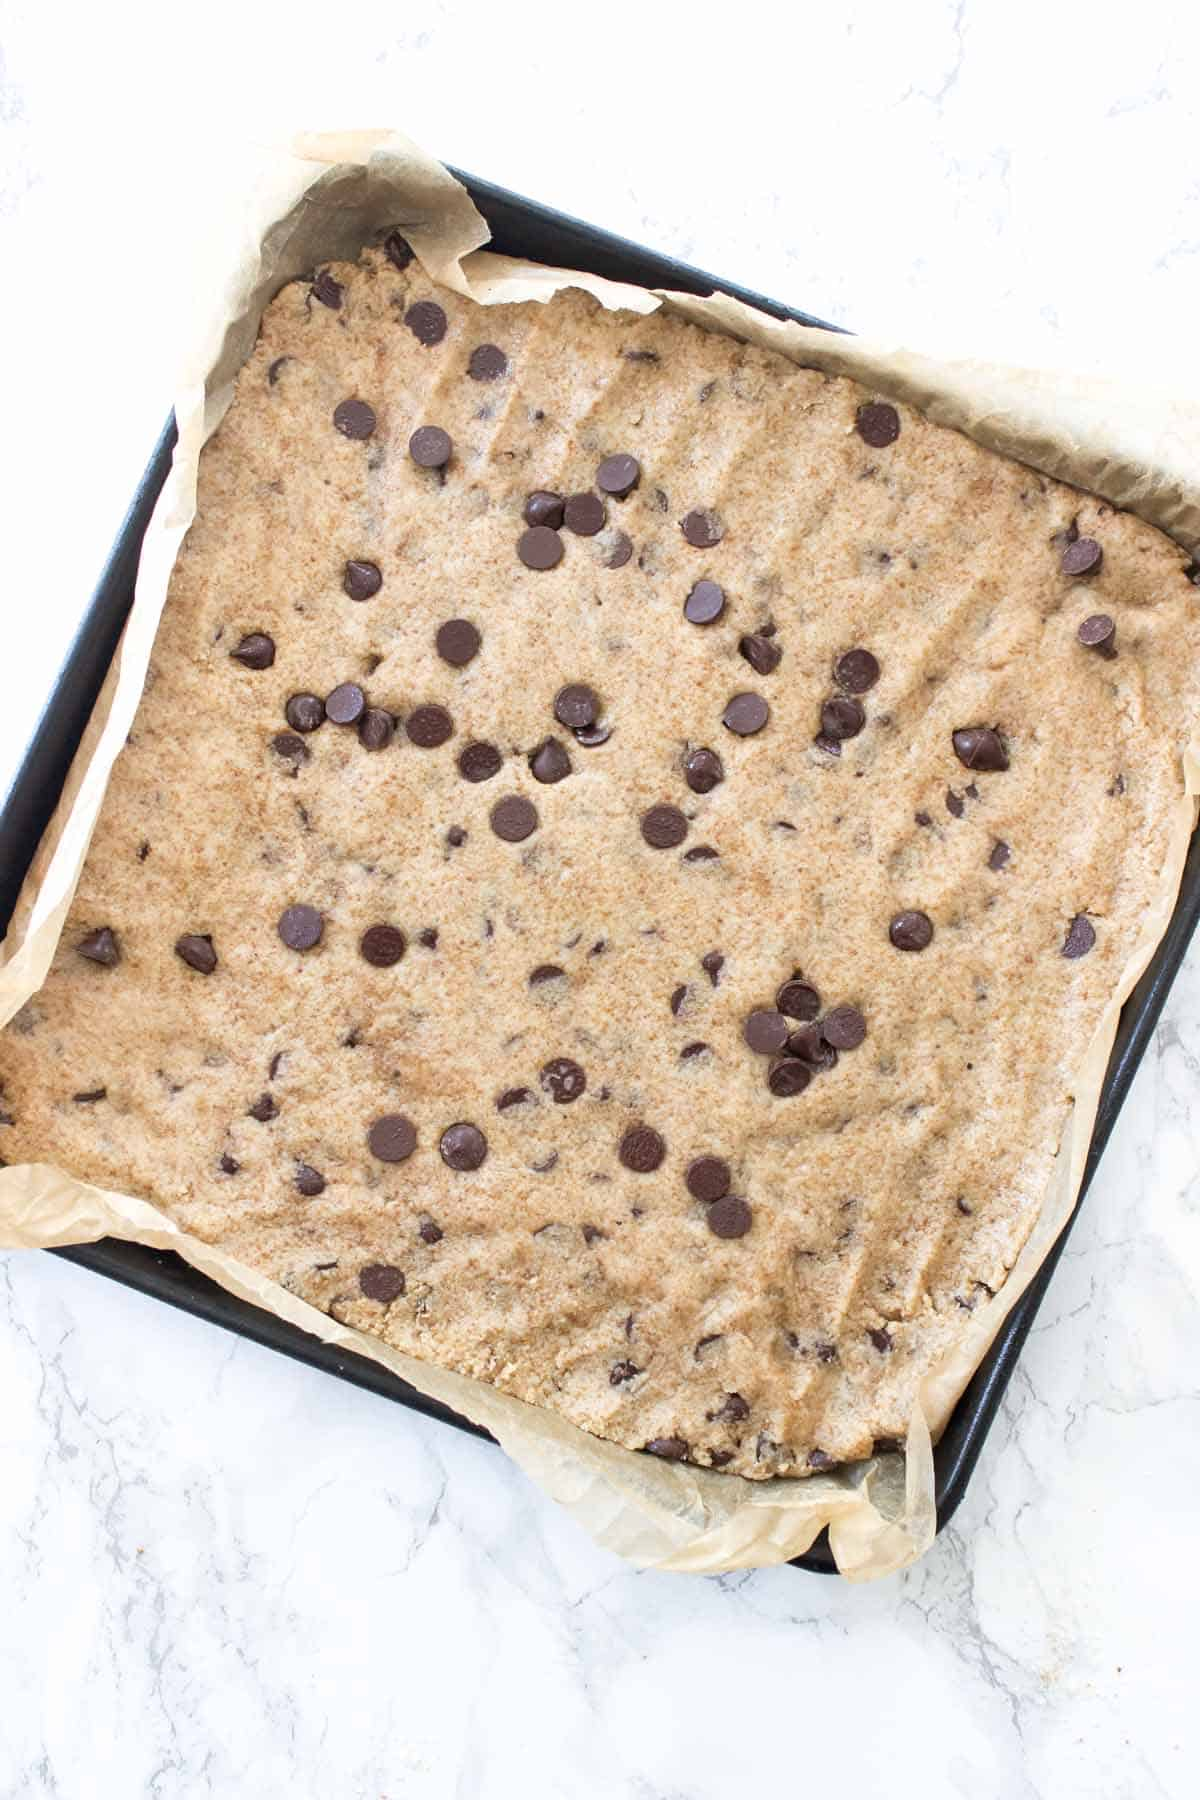 This Paleo Chocolate Chip Cookie Brittle is crunchy just like the outside of a perfectly baked cookie. All you need is one bowl and a few simple ingredients!